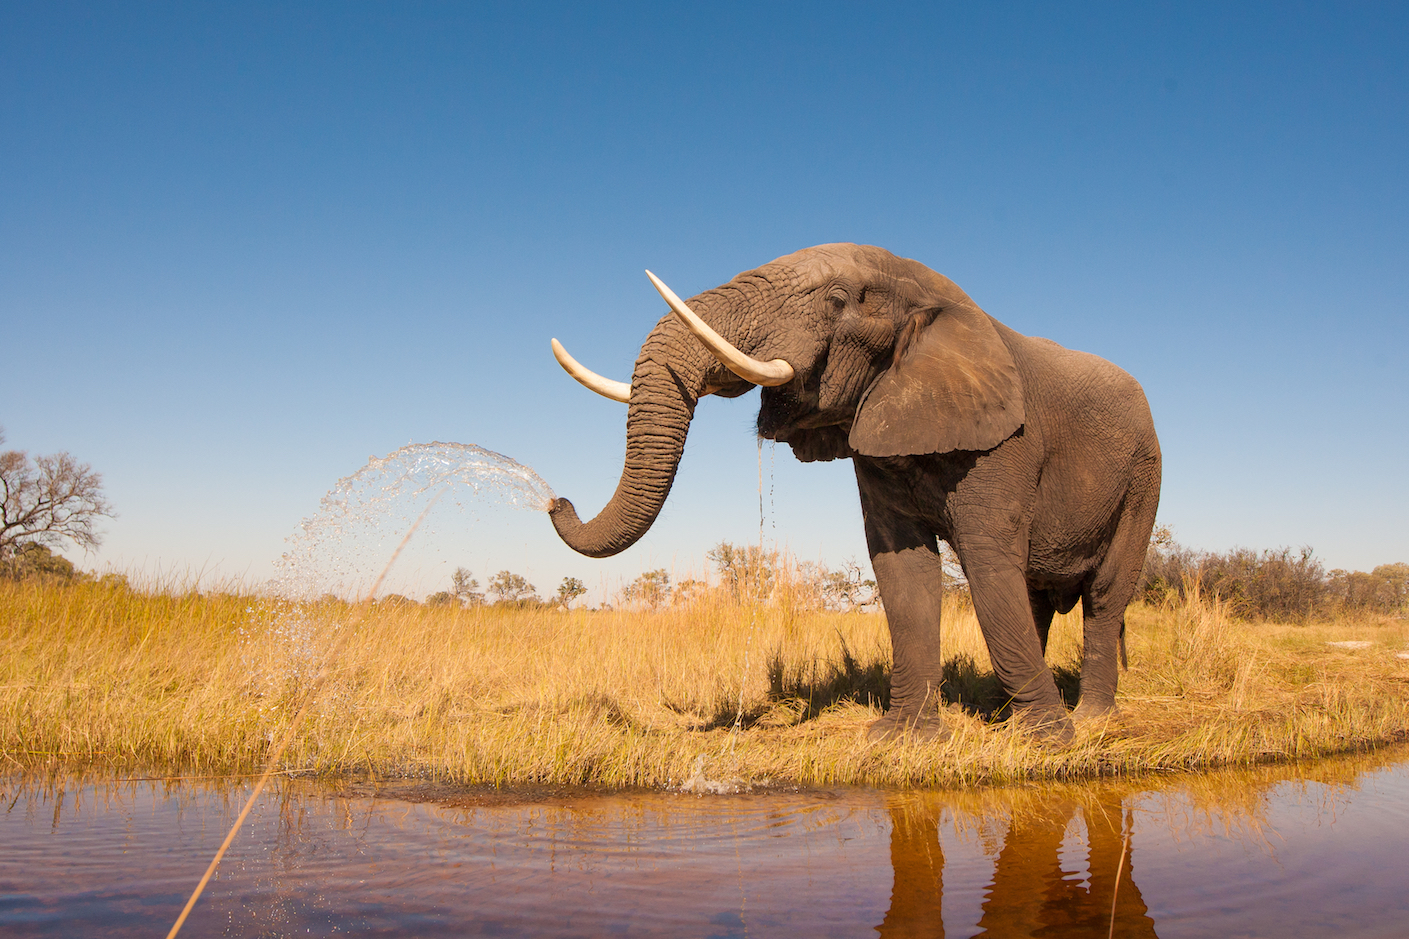 Elephant populations in Africa may be on the long road to recovery after years of poaching and illegal ivory trading have devastated the animals.